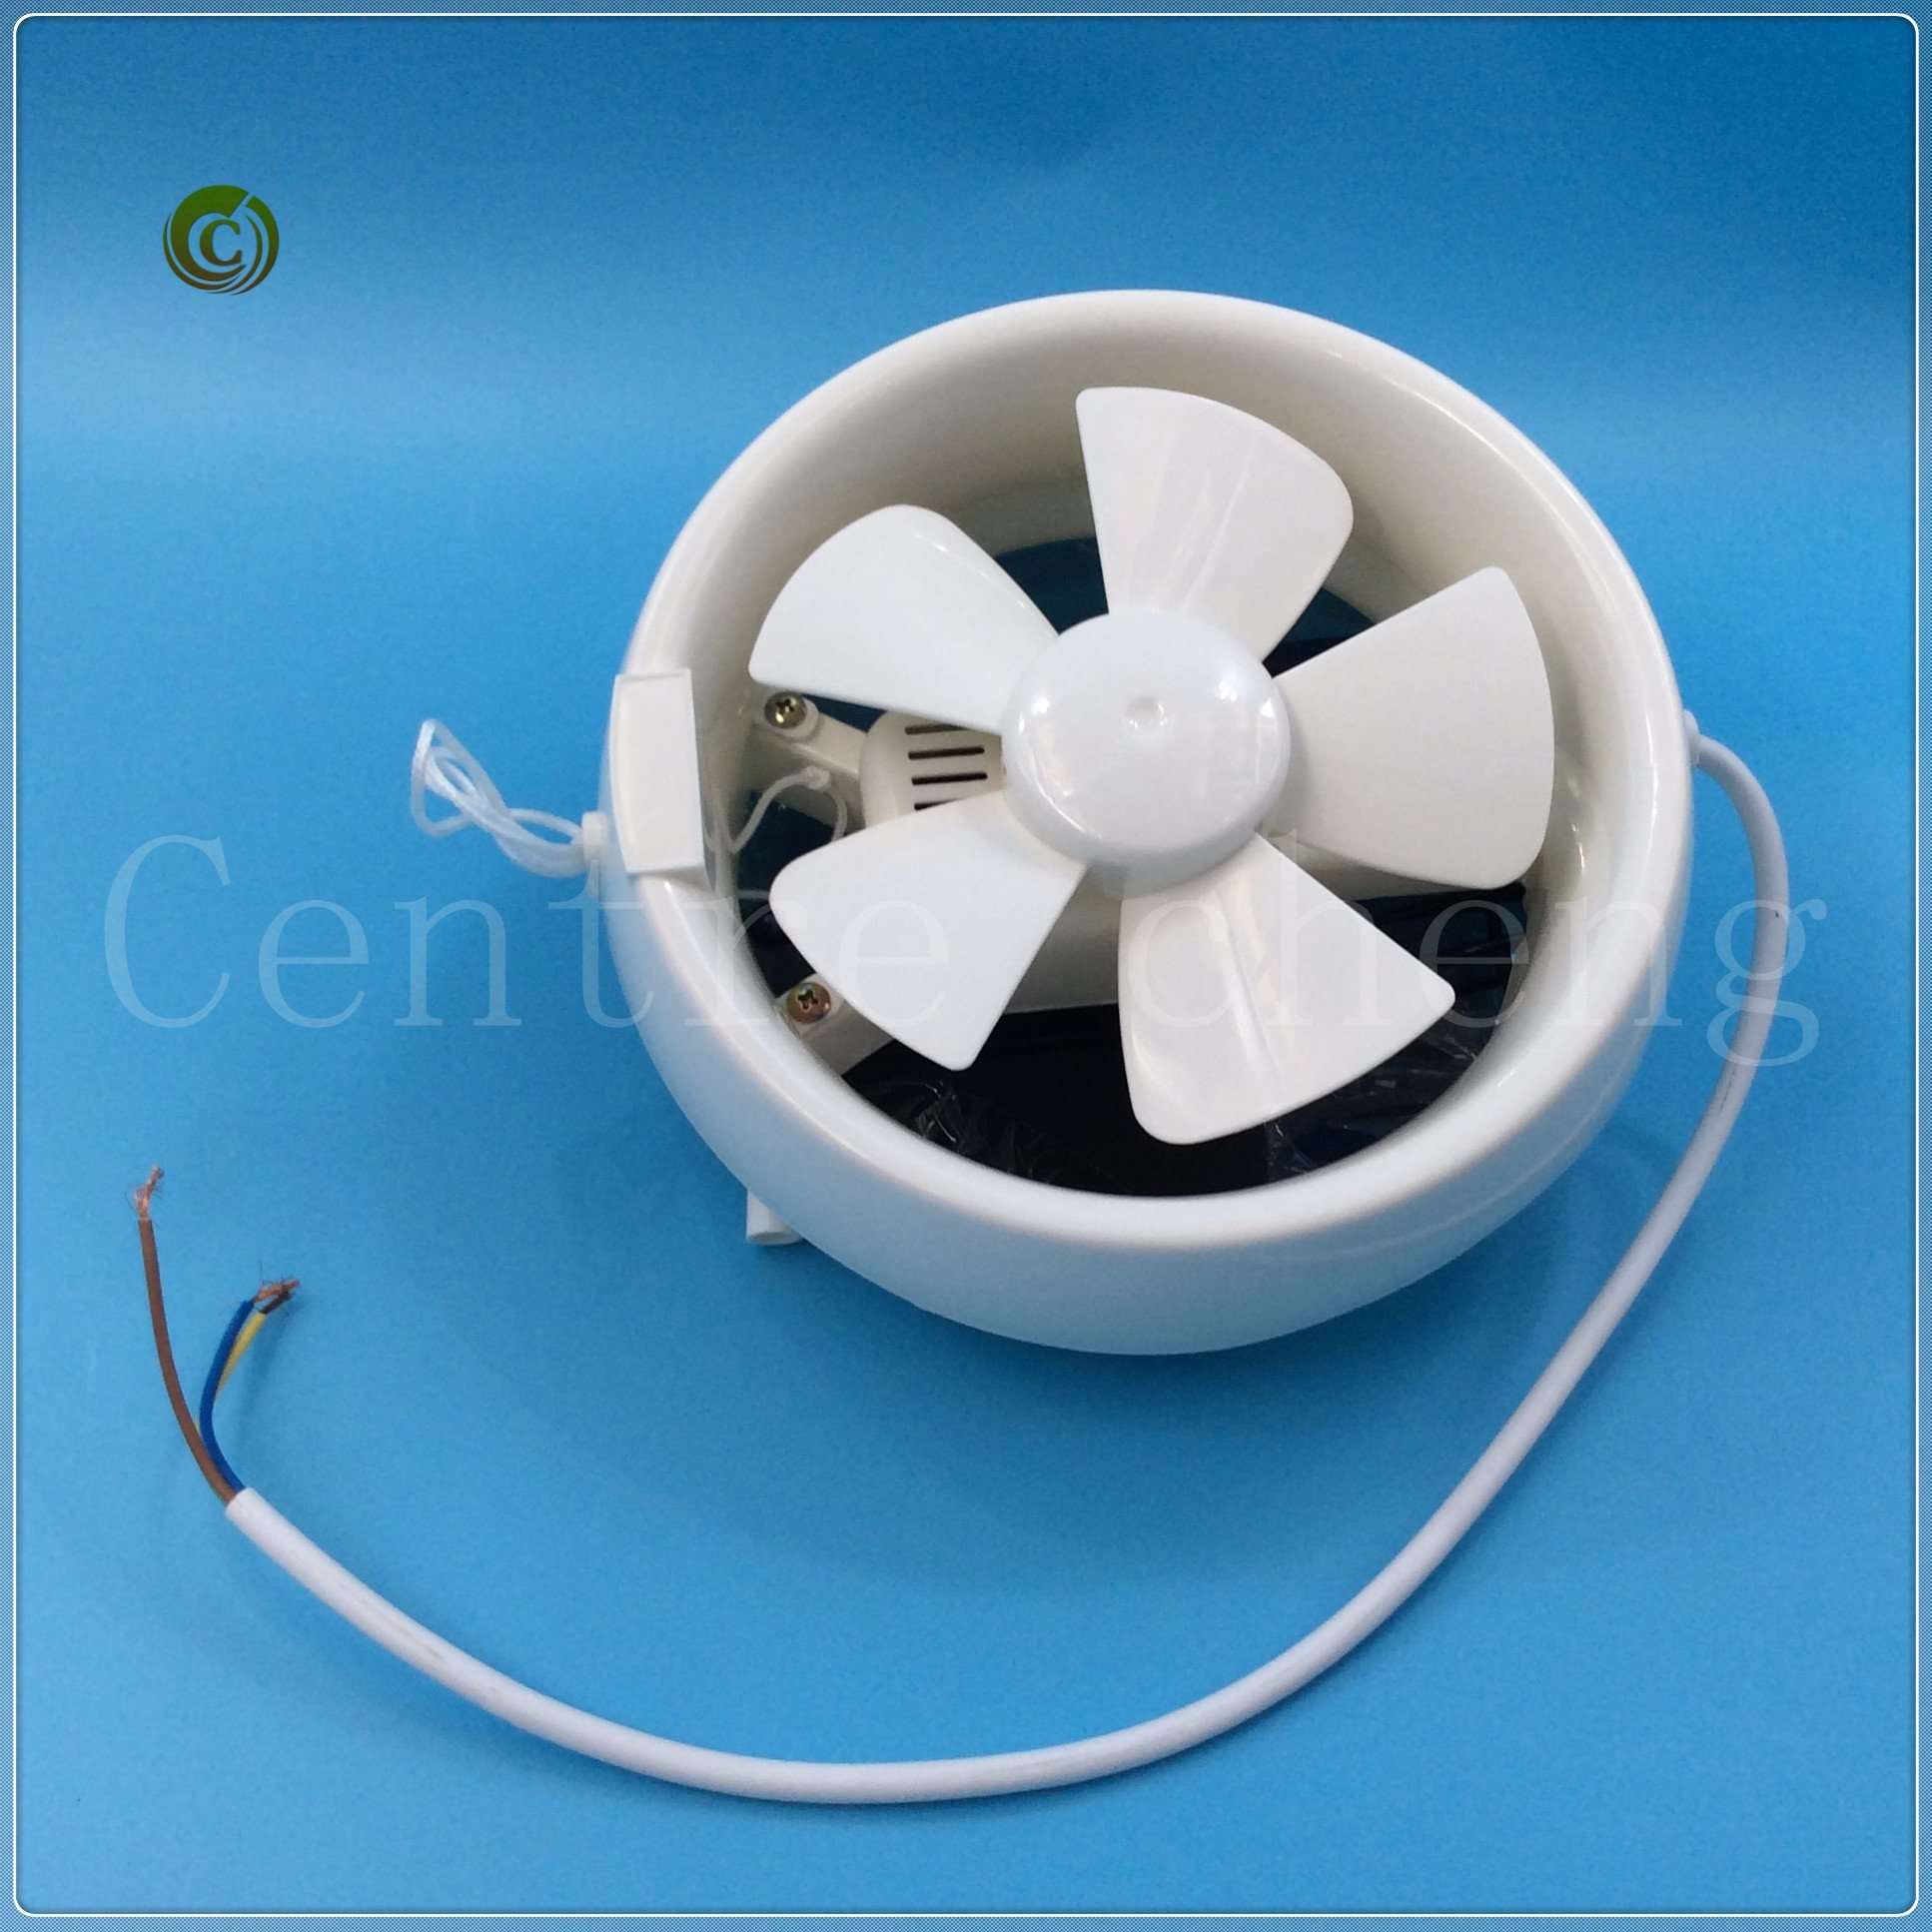 Invent Decorative Satin Nickel 100 Cfm Ceiling Exhaust Fan With Light And White Globe Energy